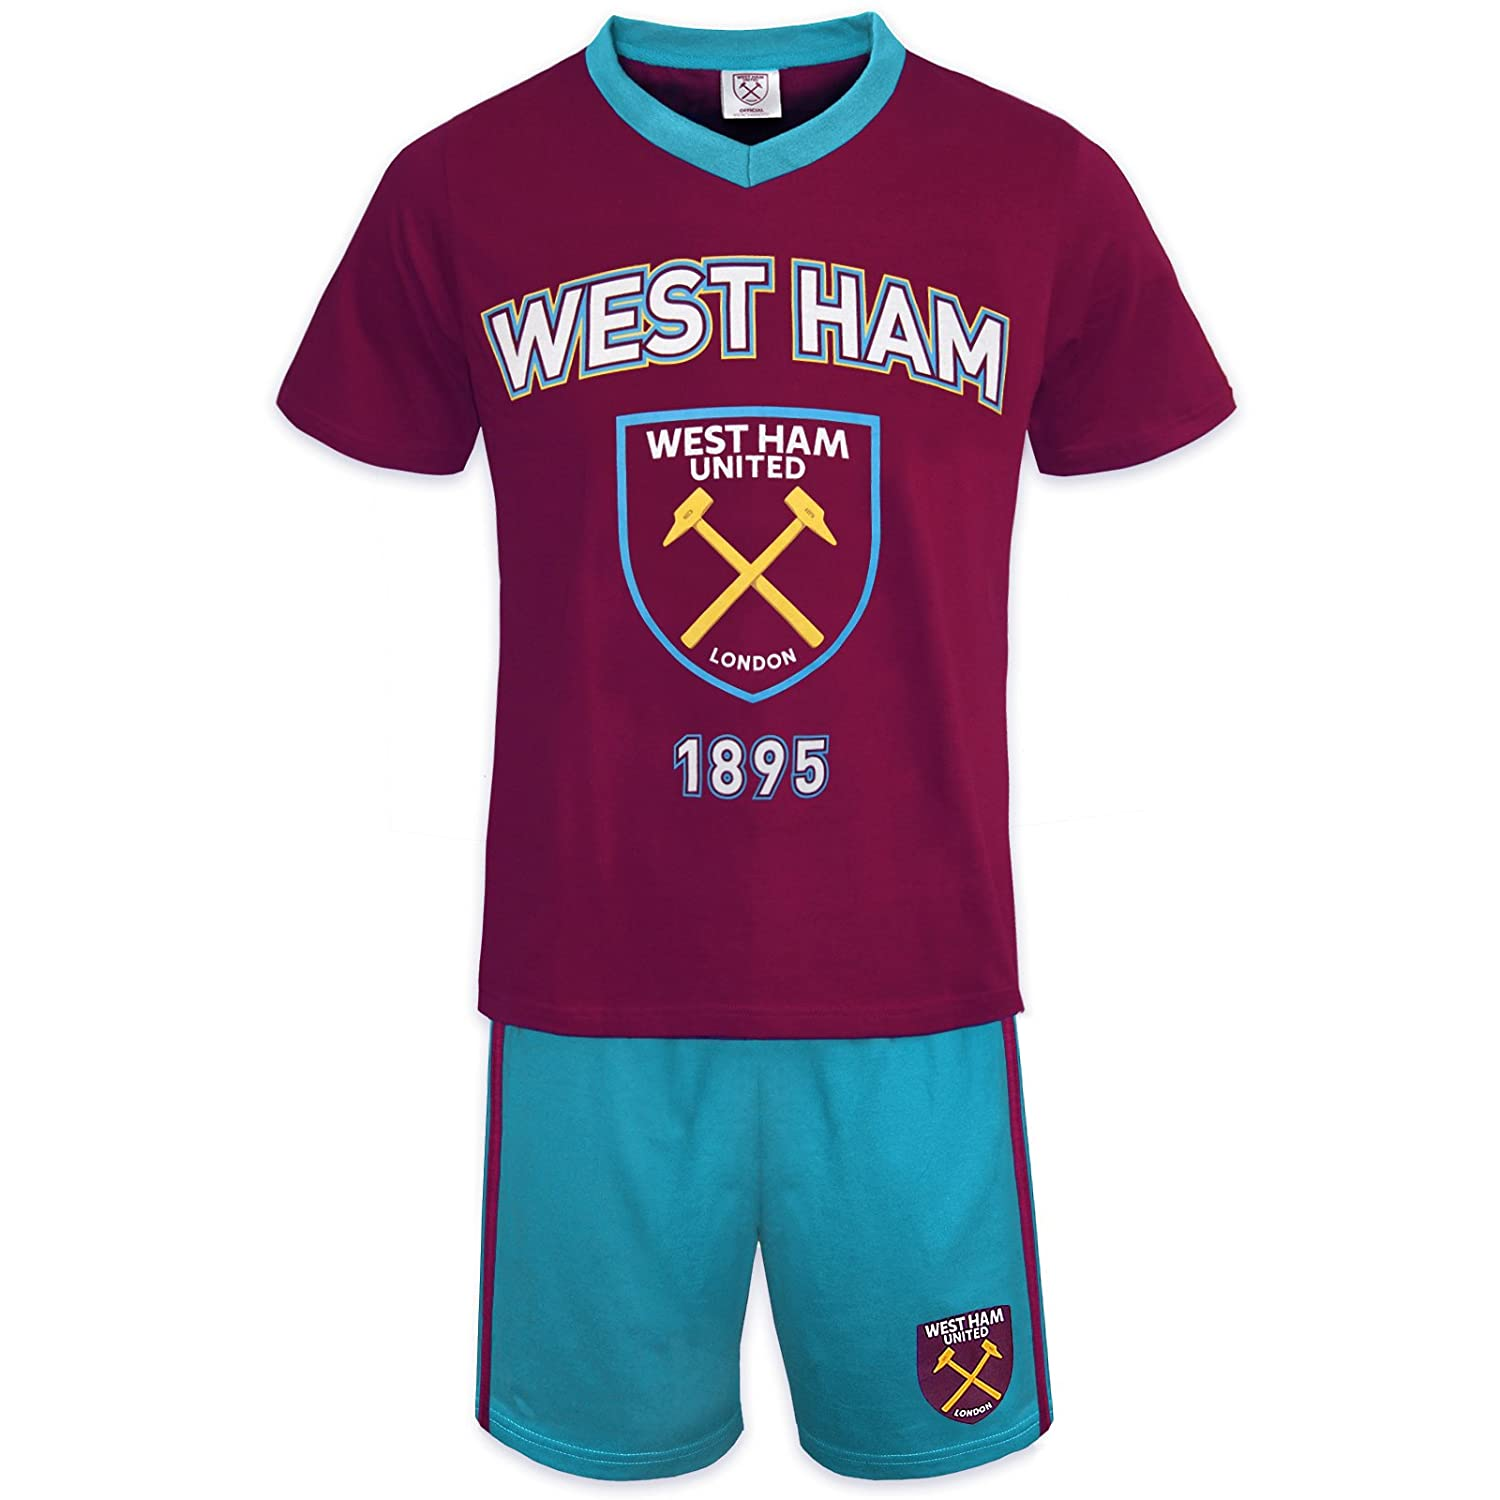 West Ham United Football Club Official Soccer Gift Boys Short Pajamas